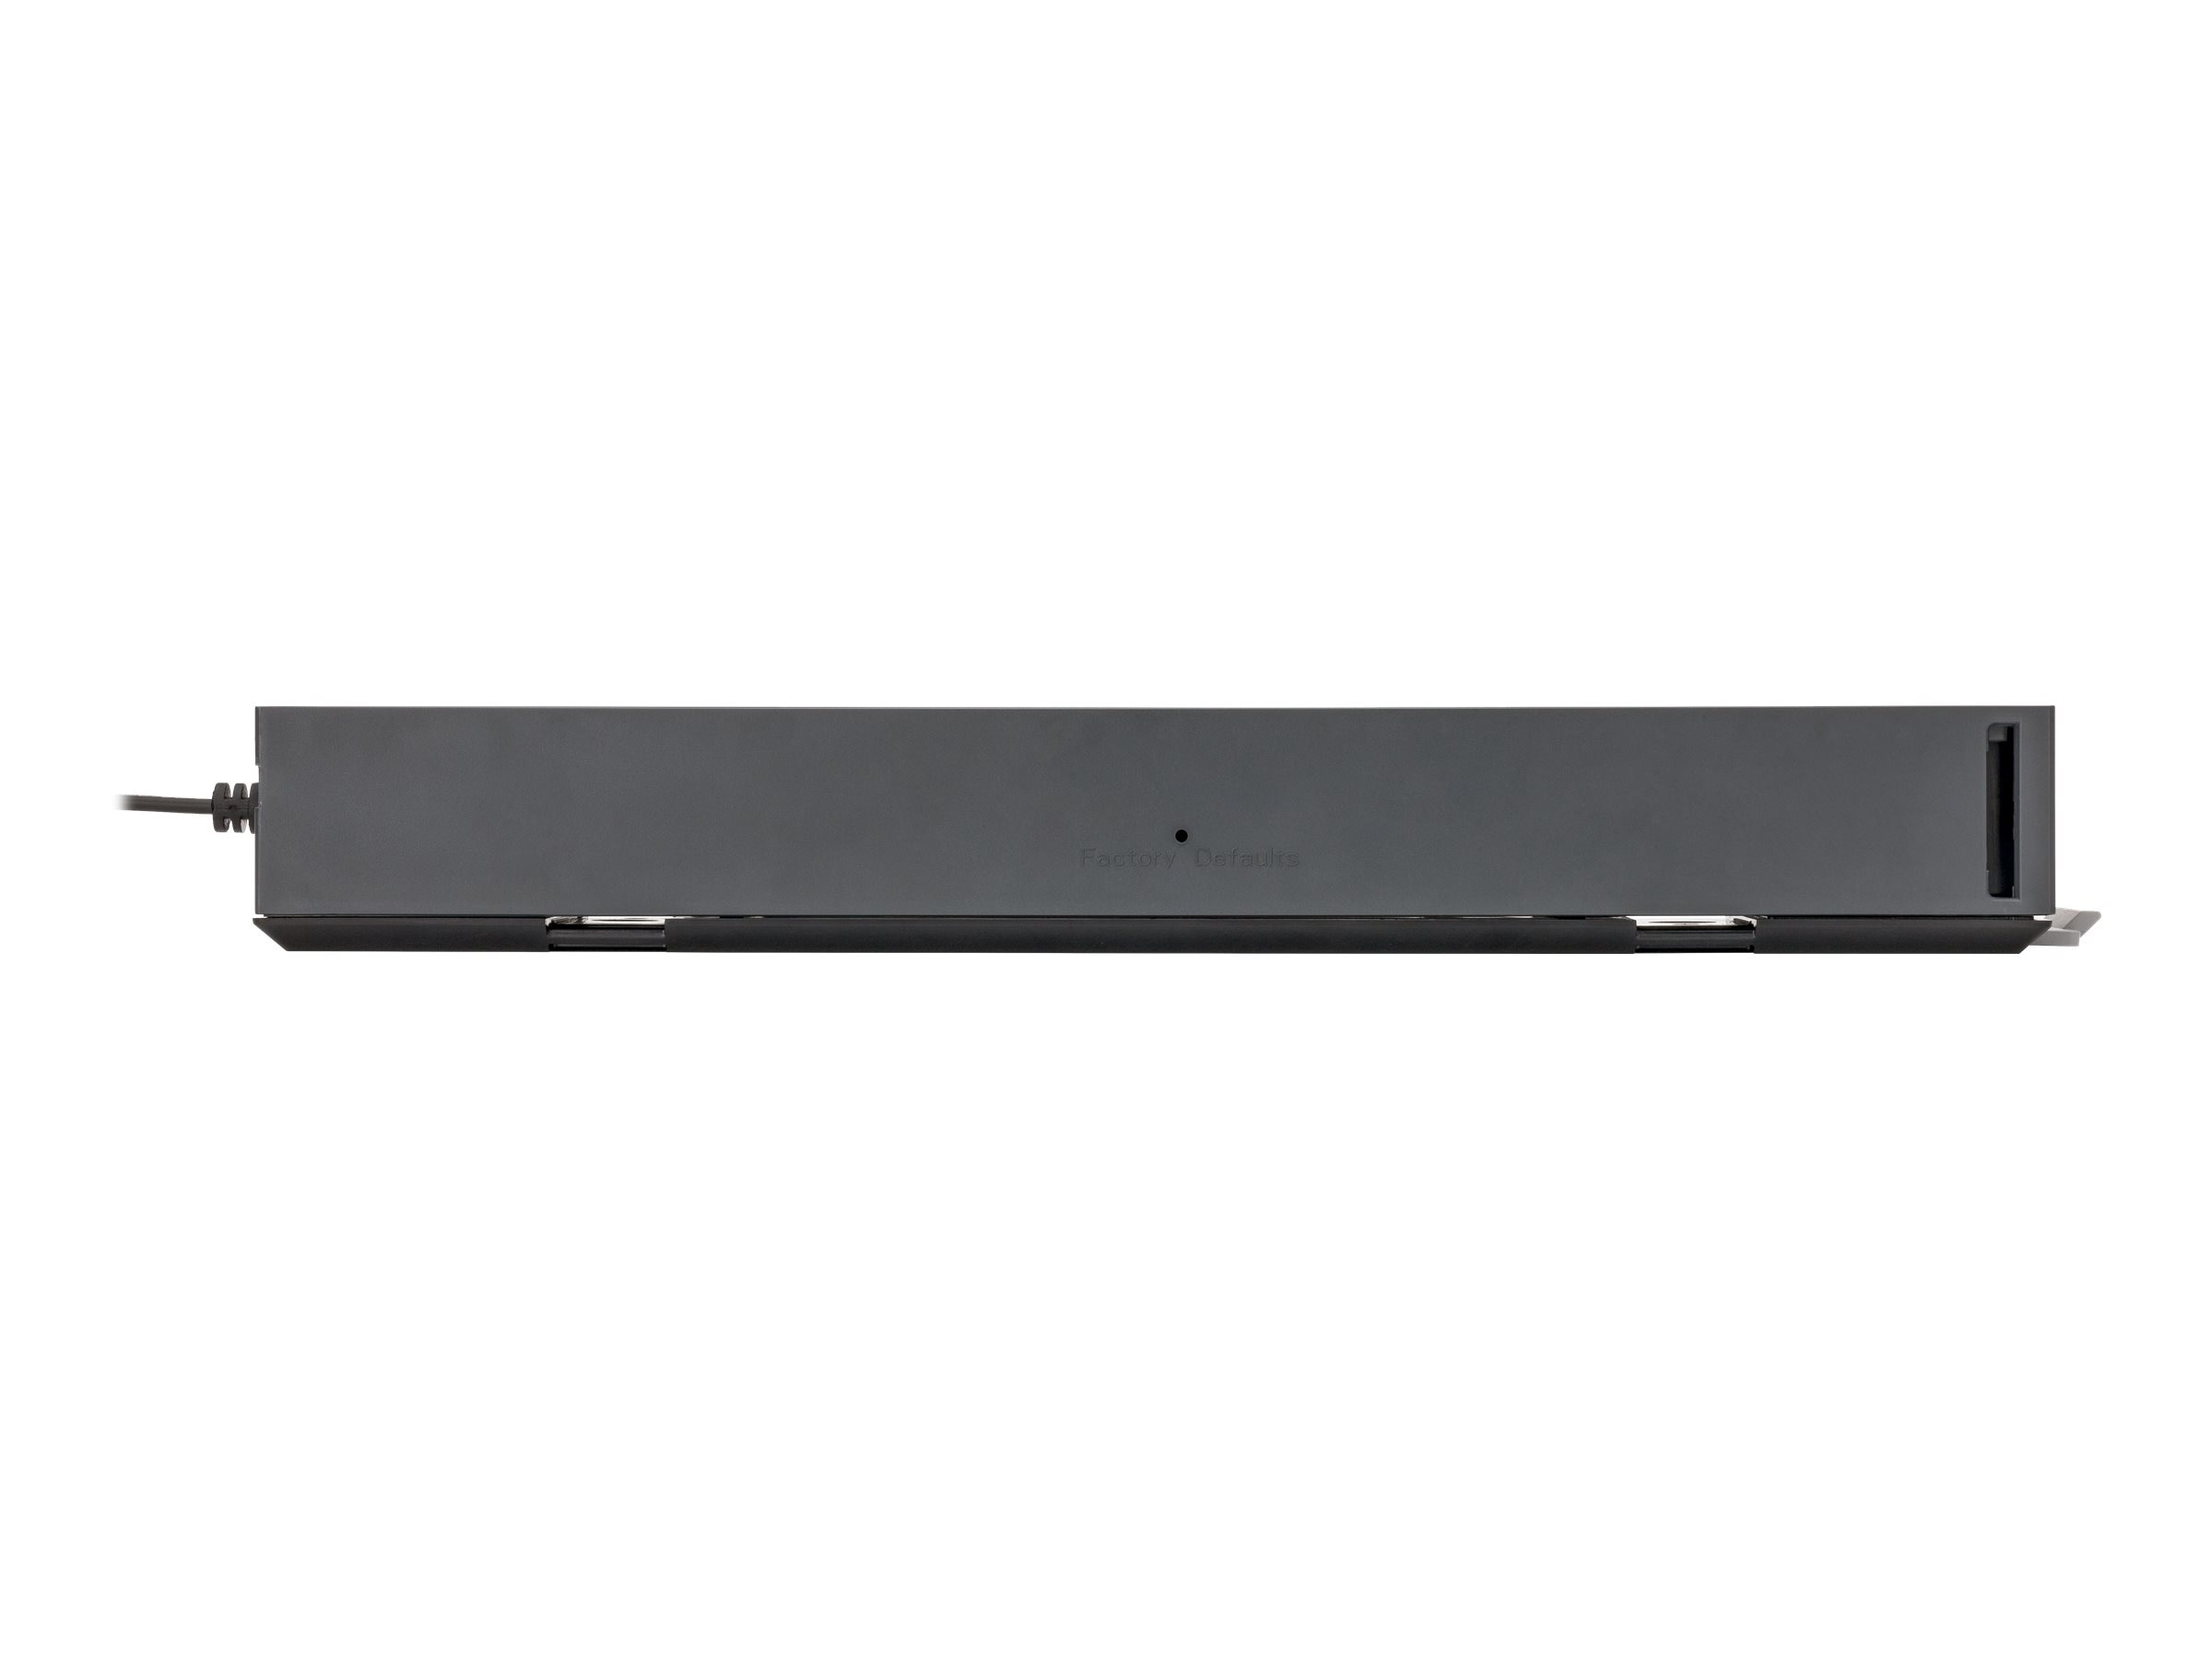 Netgear 8 Port Gigabit Click Switch, GSS108E-100NAS